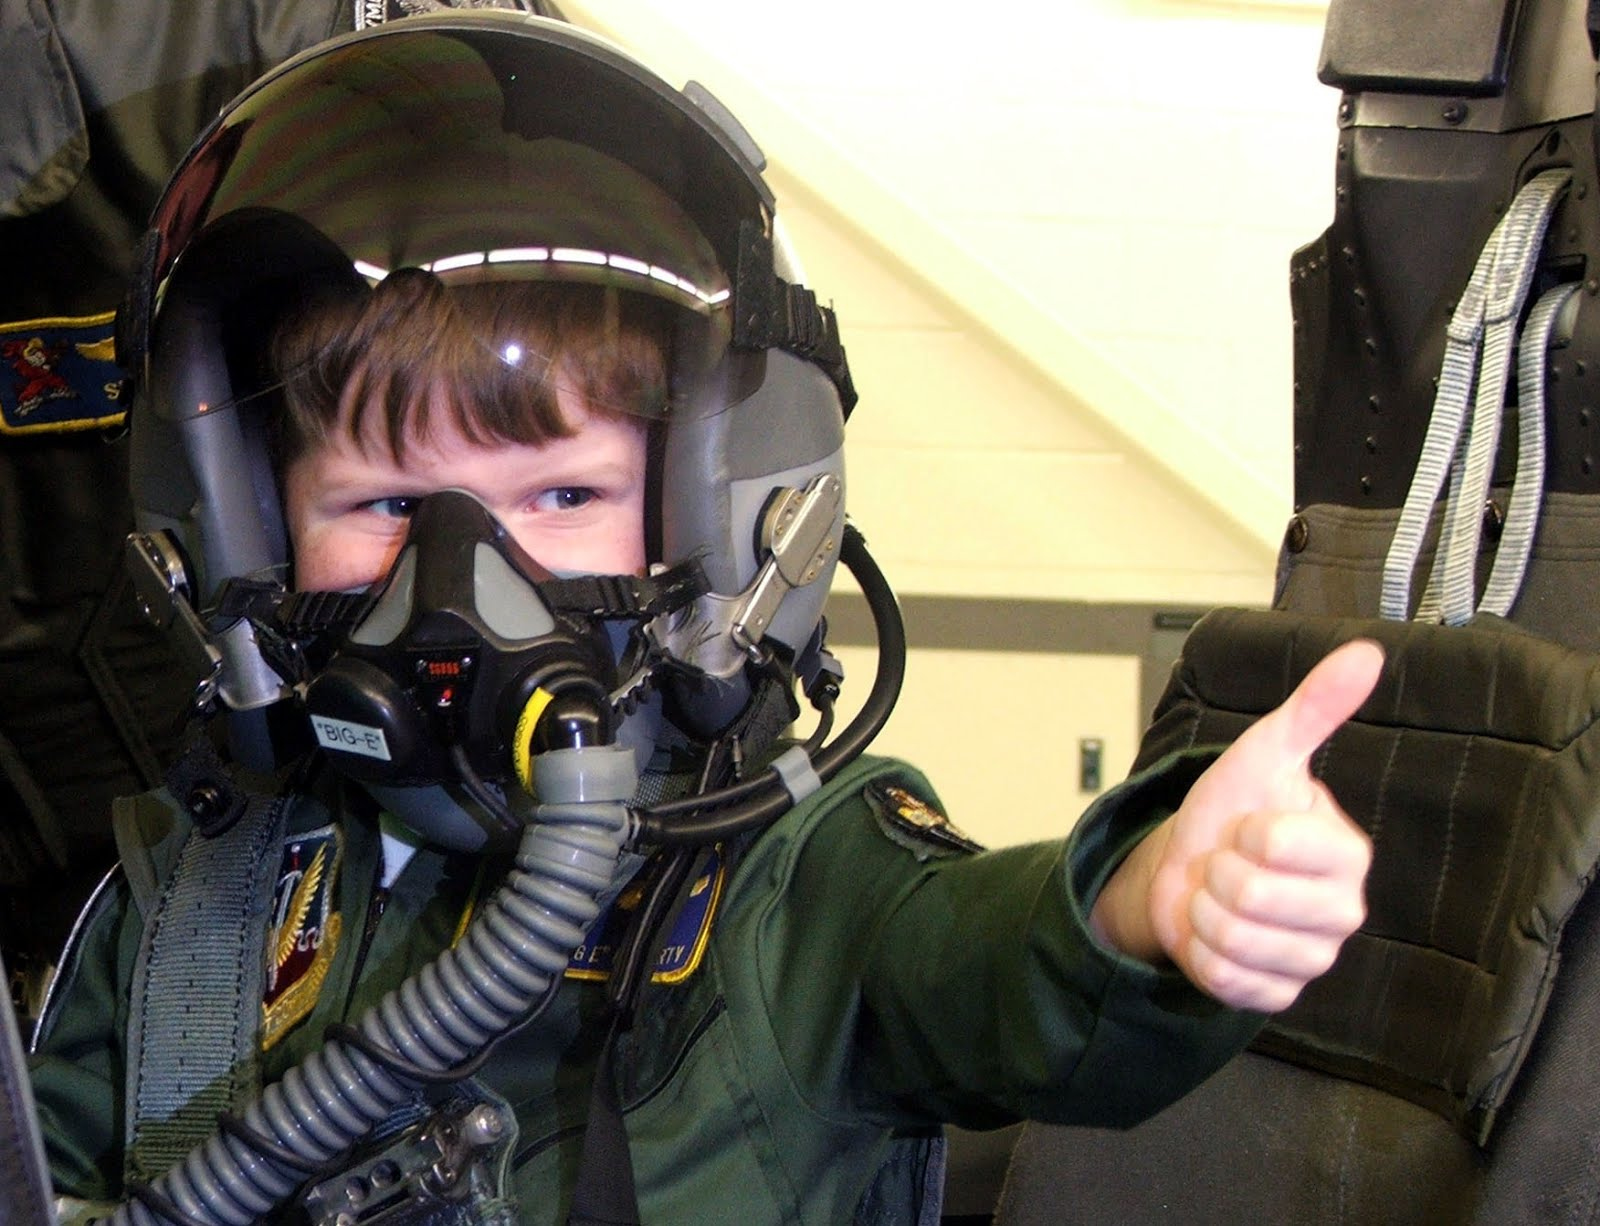 Five-year-old_Evan_Moriarty_Make-A-Wish_Foundation.jpg